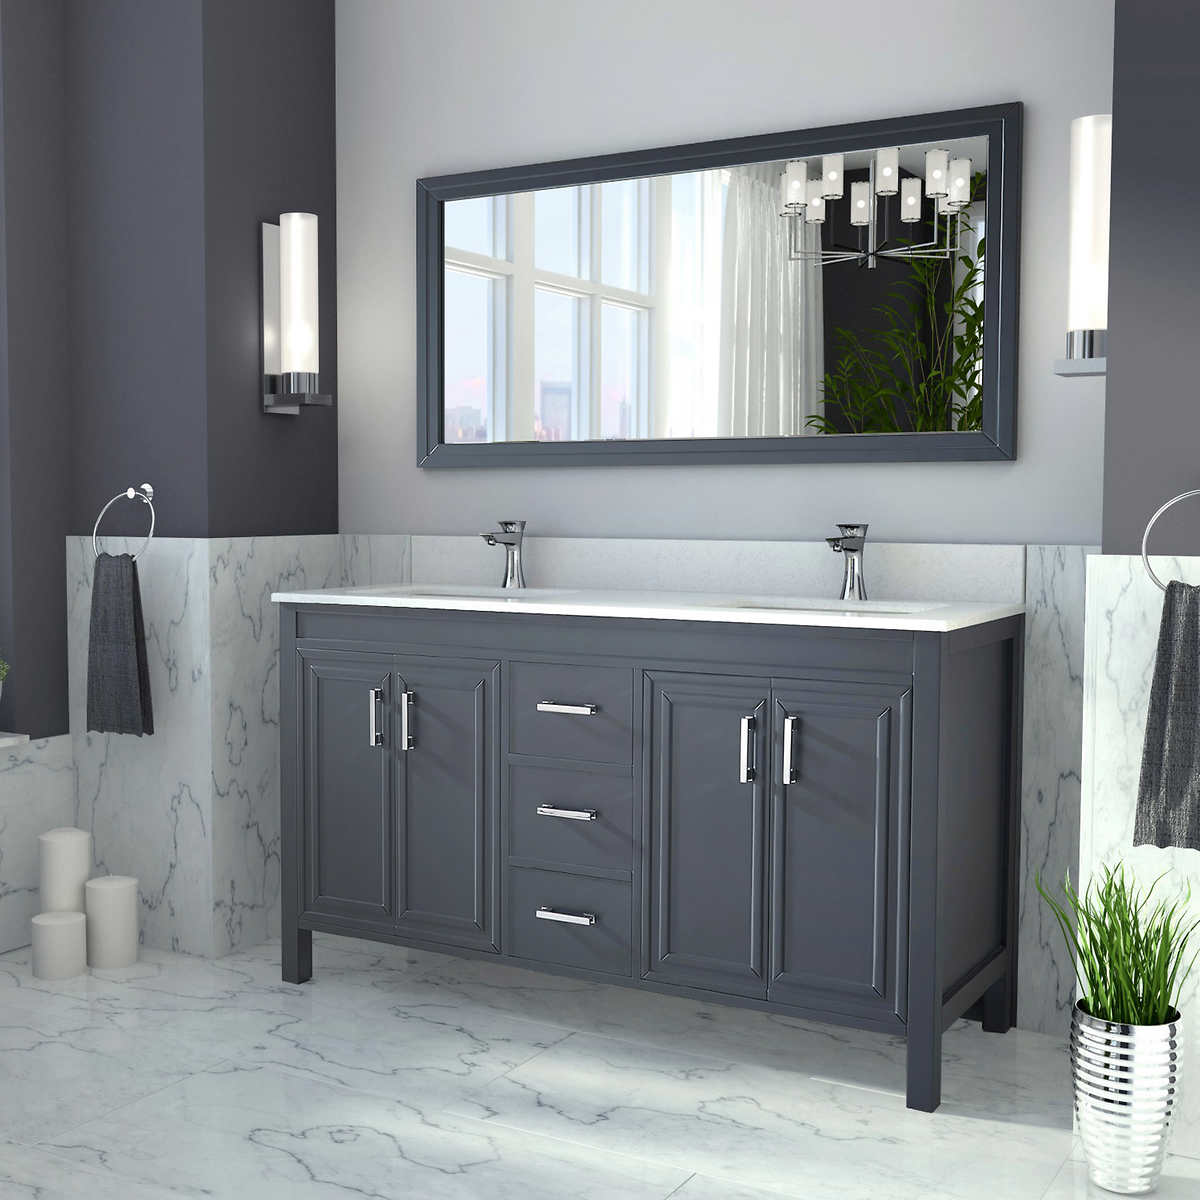 5 foot double vanity. Bathroom Double Sink Vanity double sink vanities  costco Pleasing 60 Decorating Inspiration Of